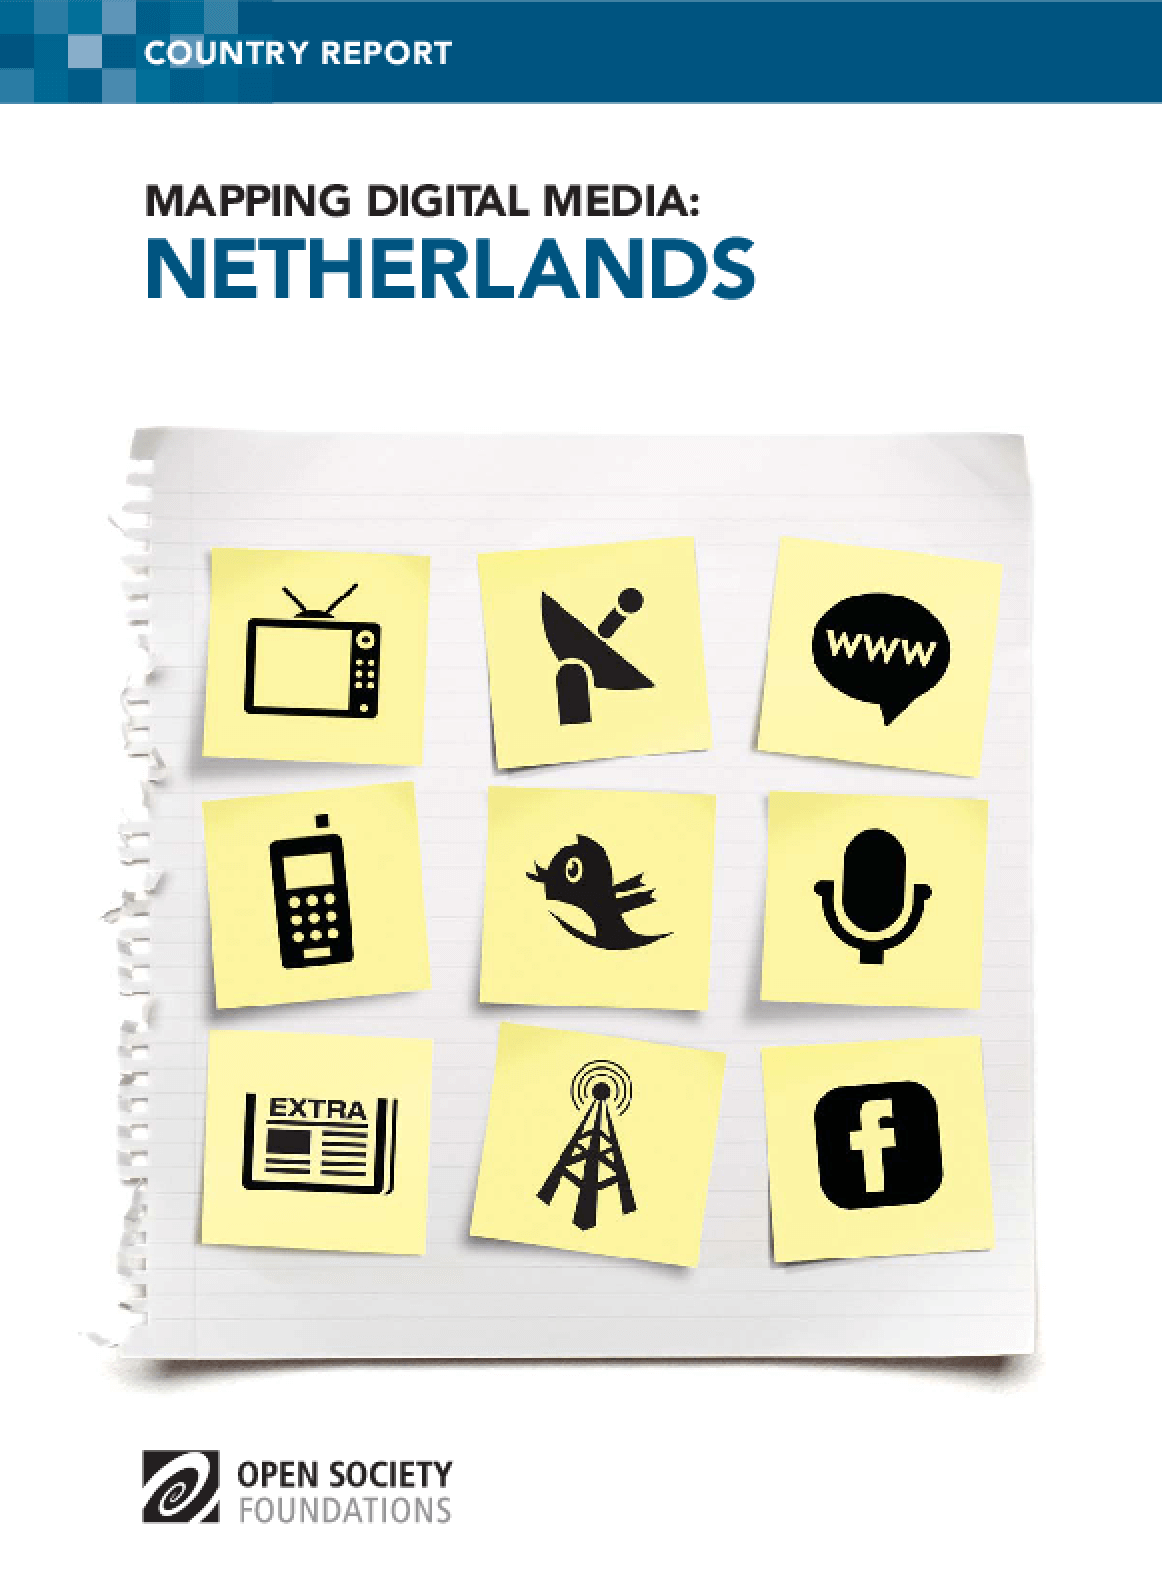 Mapping Digital Media: Netherlands